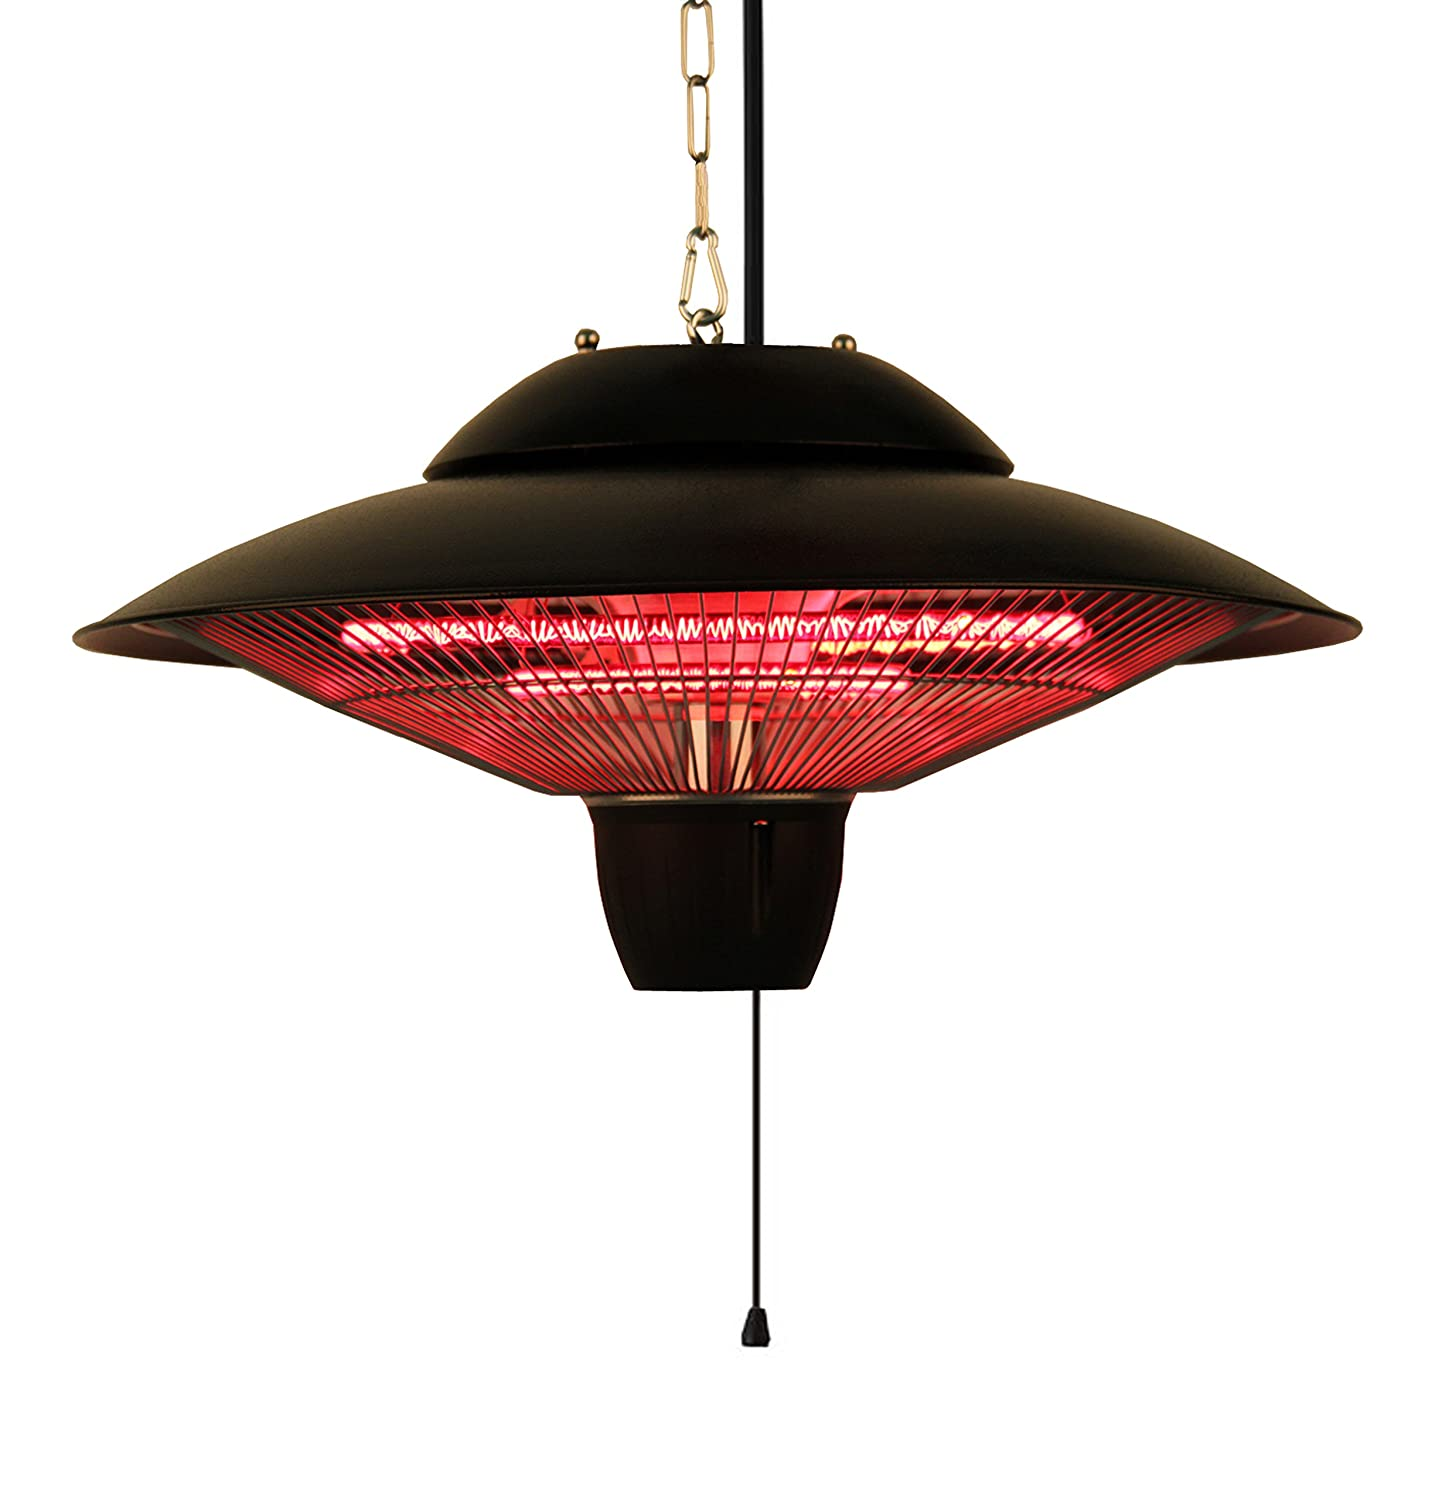 Ener-G+ Indoor/Outdoor Ceiling Electric Patio Heater, Black HEA-22000-HBR